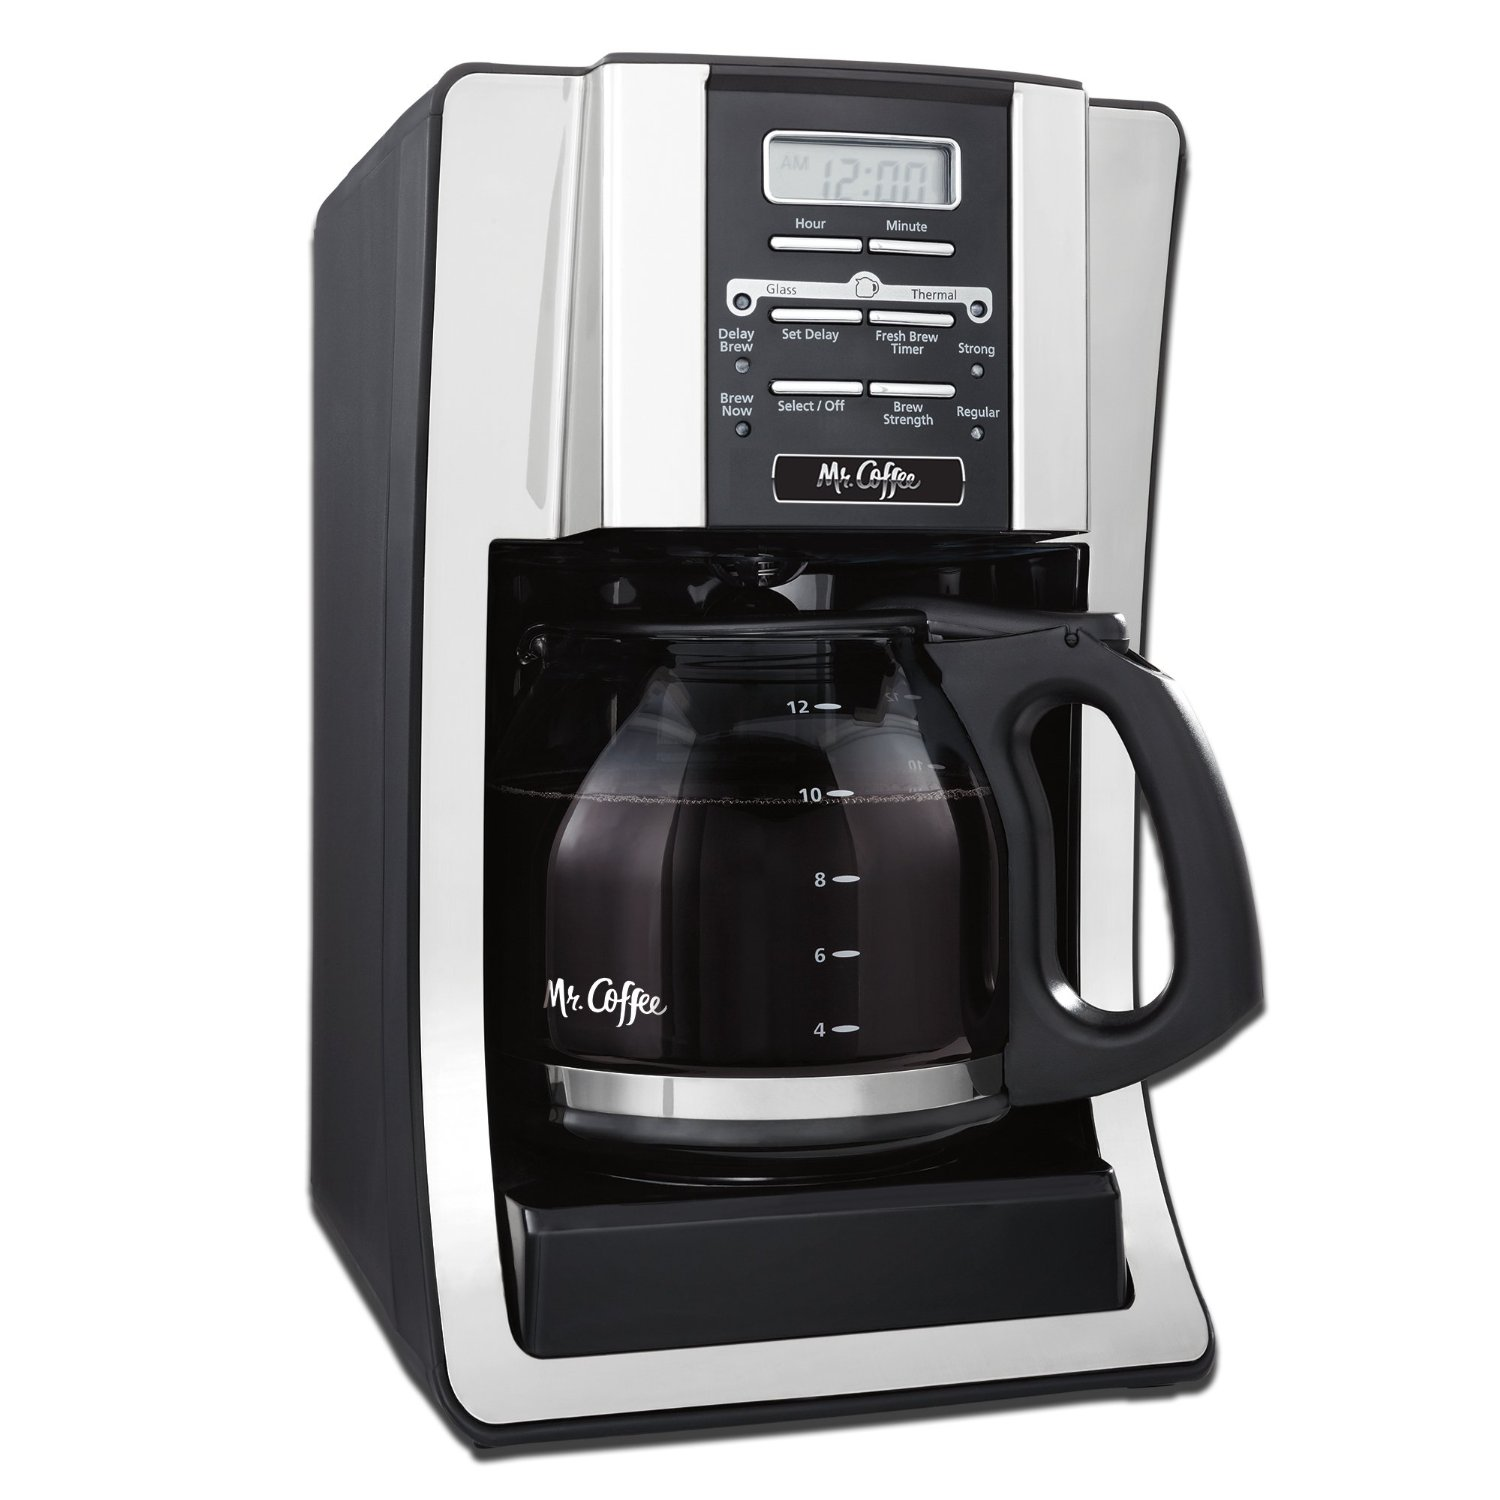 Mr. Coffee 12-Cup Programmable Coffeemaker - coffee gadget